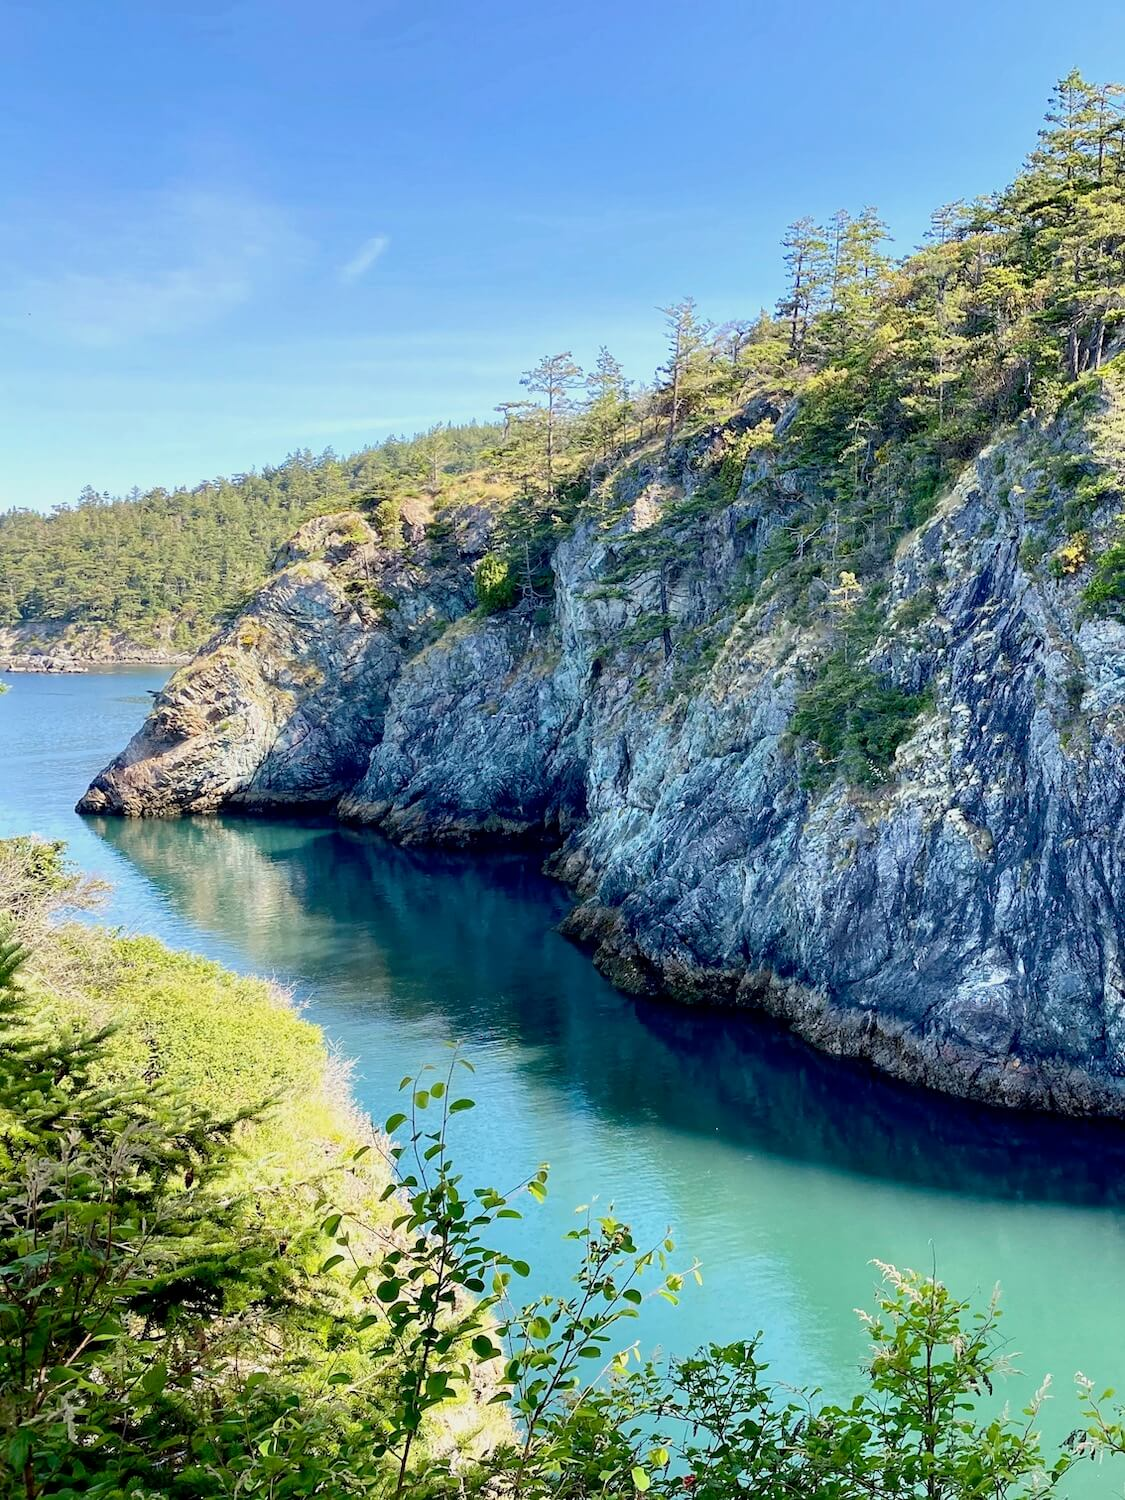 A day trip from Seattle to the dramatic coastlines of Deception Pass and Anacortes will provide stunning views like this. A high stone faced cliff rises from bright green saltwater quietly resting in the sea below. There are small fir trees at the top of the cliff leading to a blue sky above. The cliff casts a slight dark shadow over the water and in the foreground small shrubs pop their heads up.